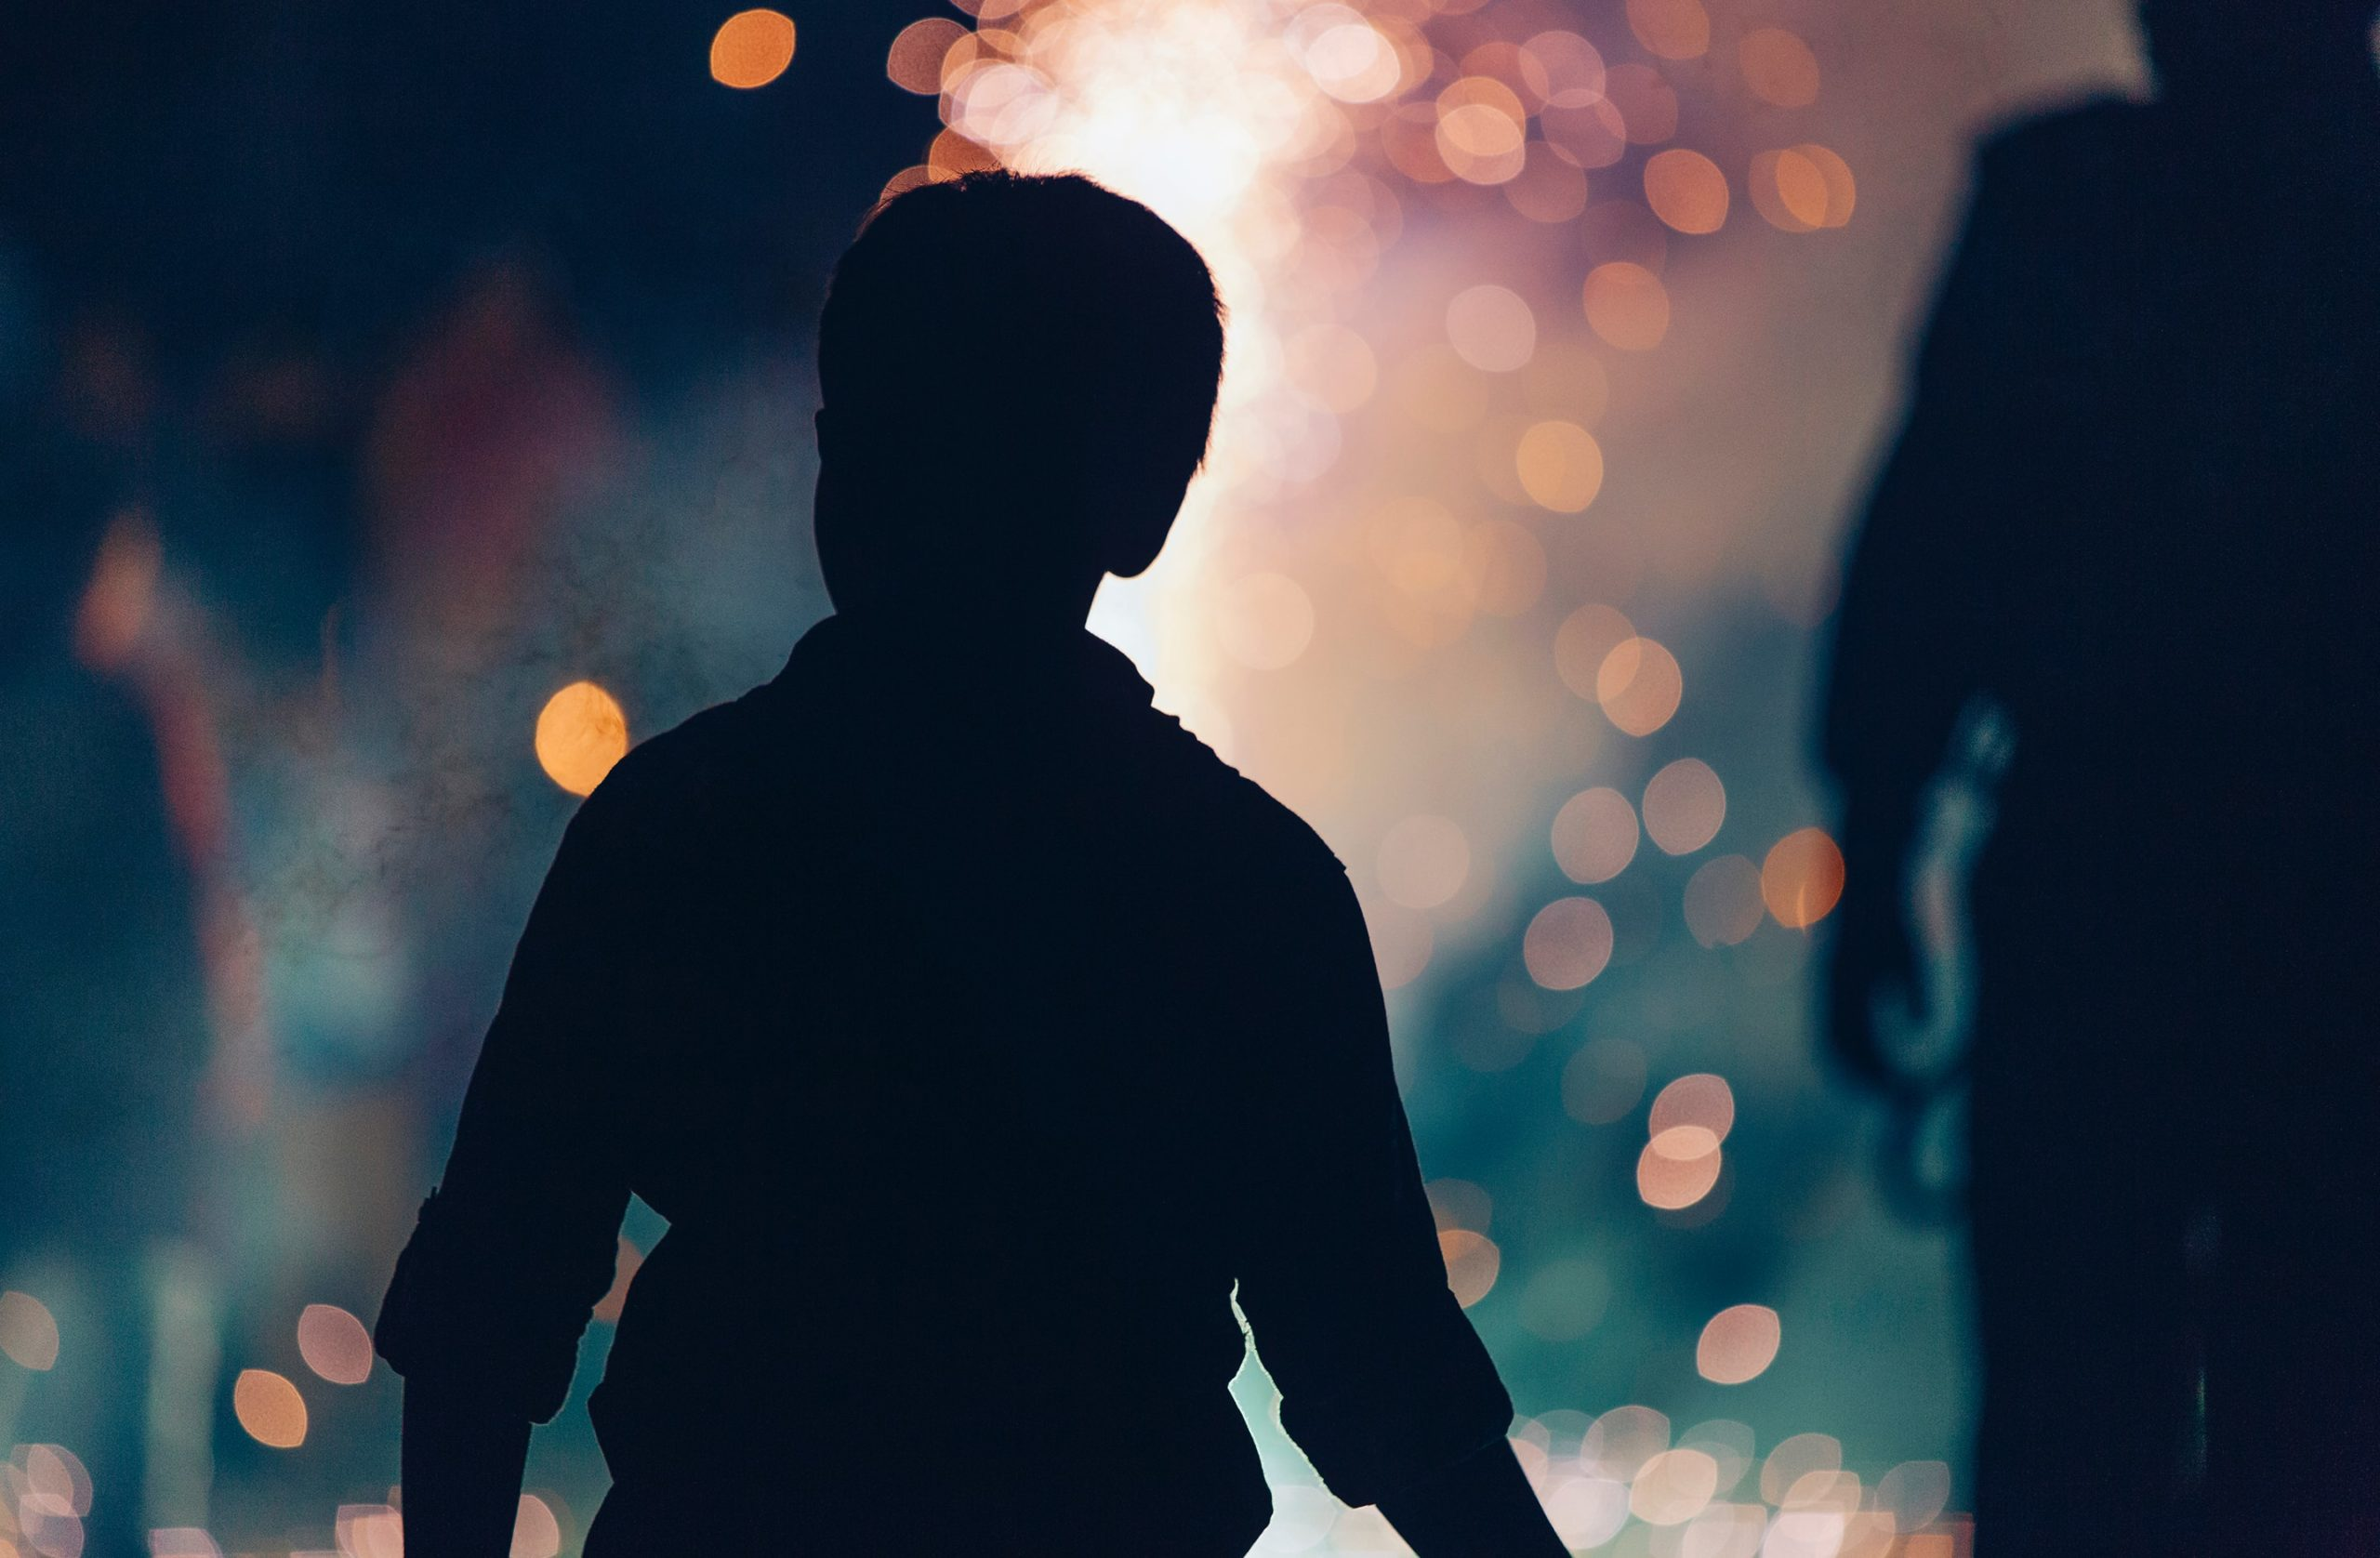 celebrations: a silhouette of a child in front of burry fireworks